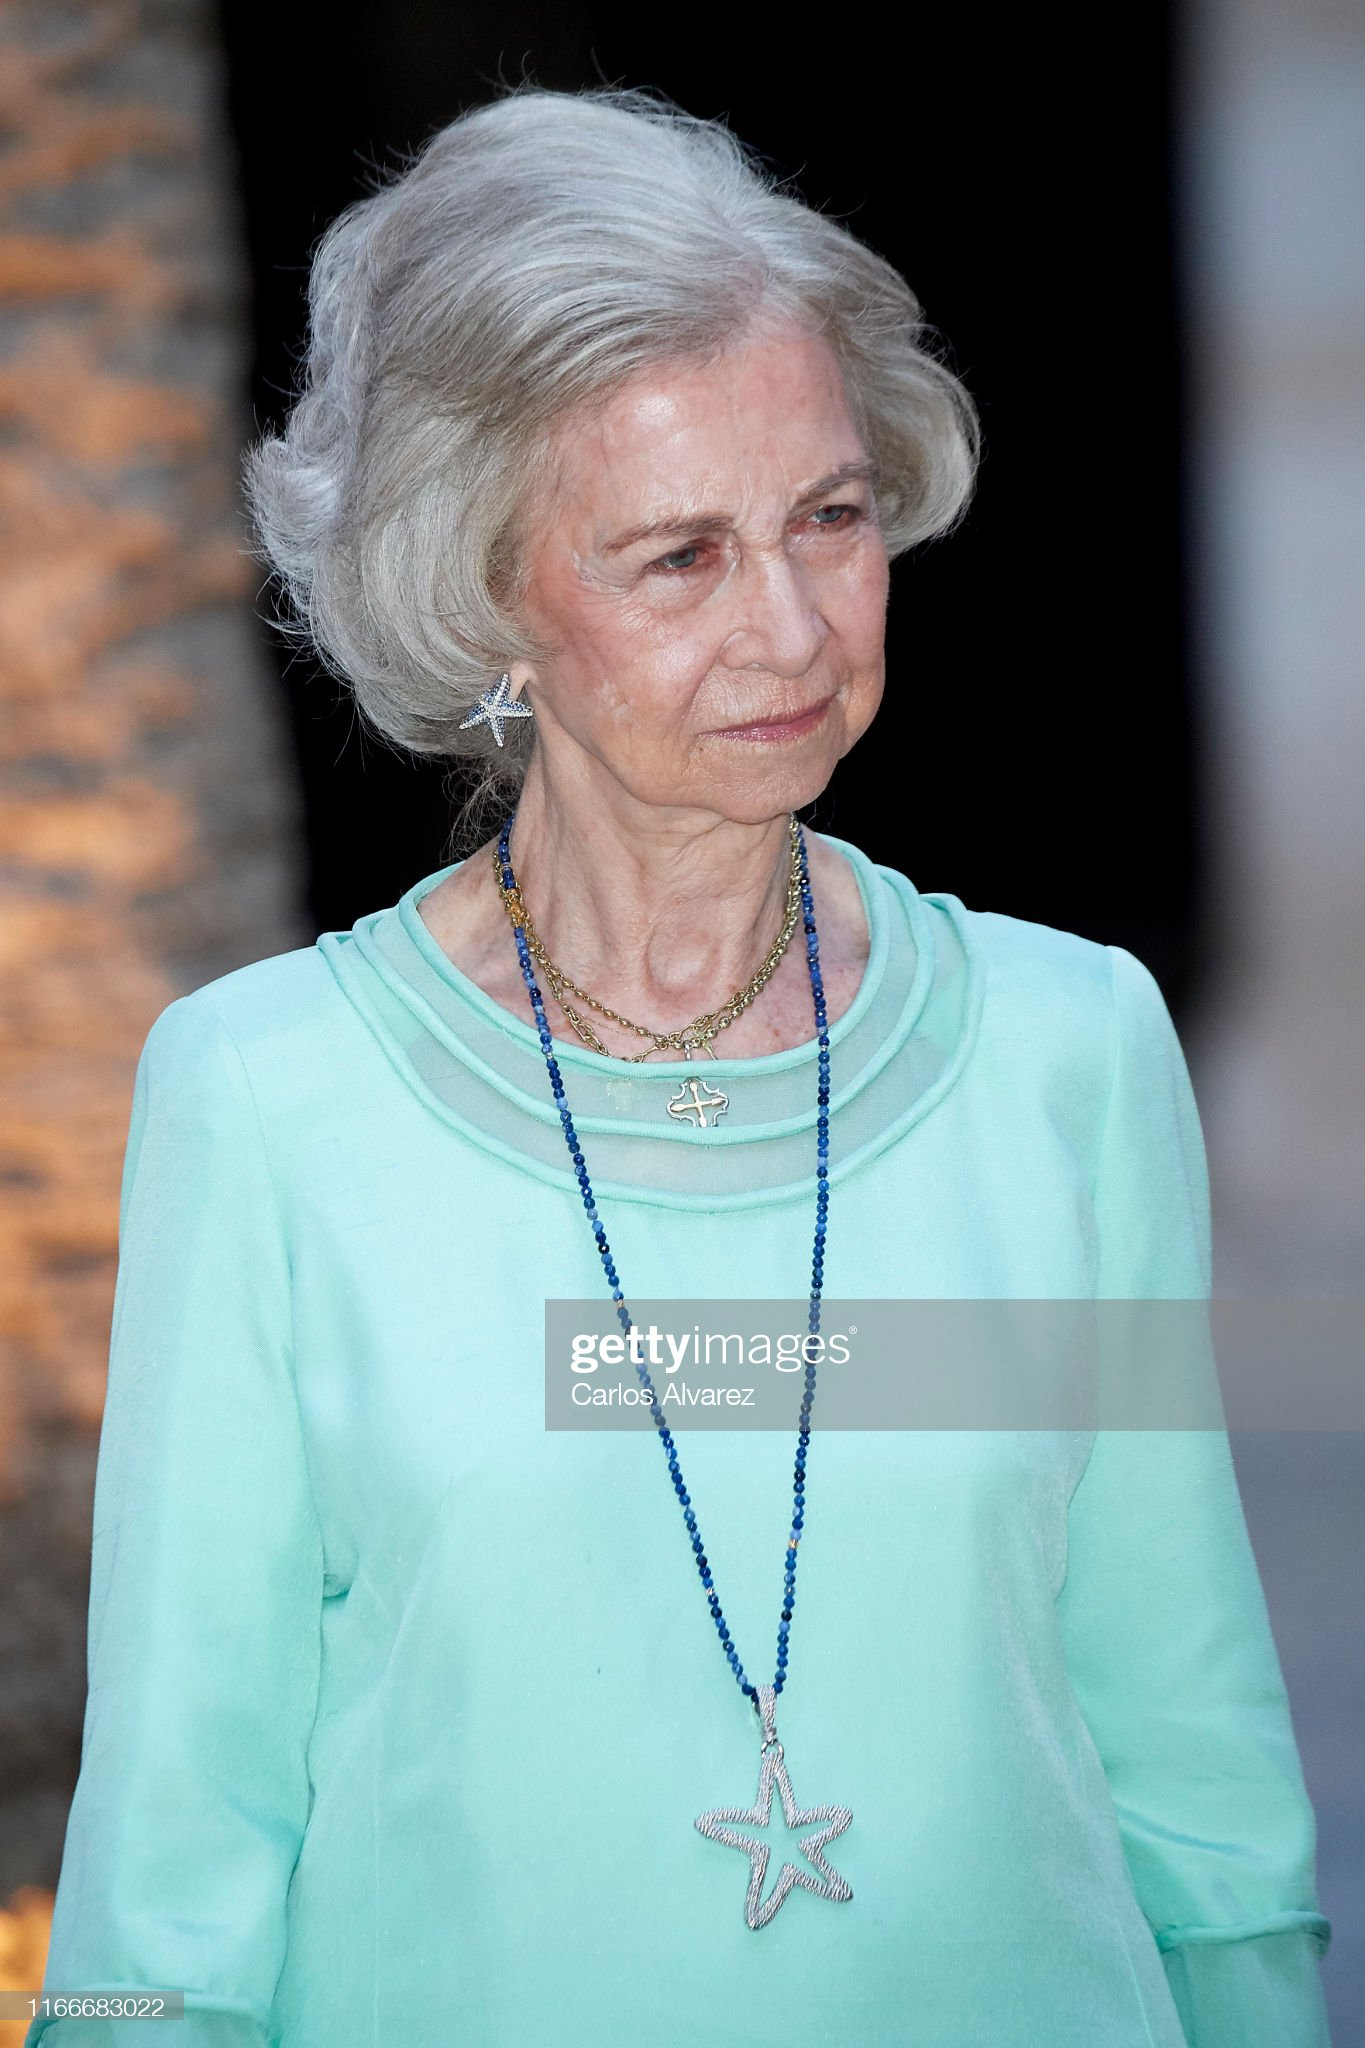 https://media.gettyimages.com/photos/queen-sofia-hosts-a-dinner-for-authorities-at-the-almudaina-palace-on-picture-id1166683022?s=2048x2048